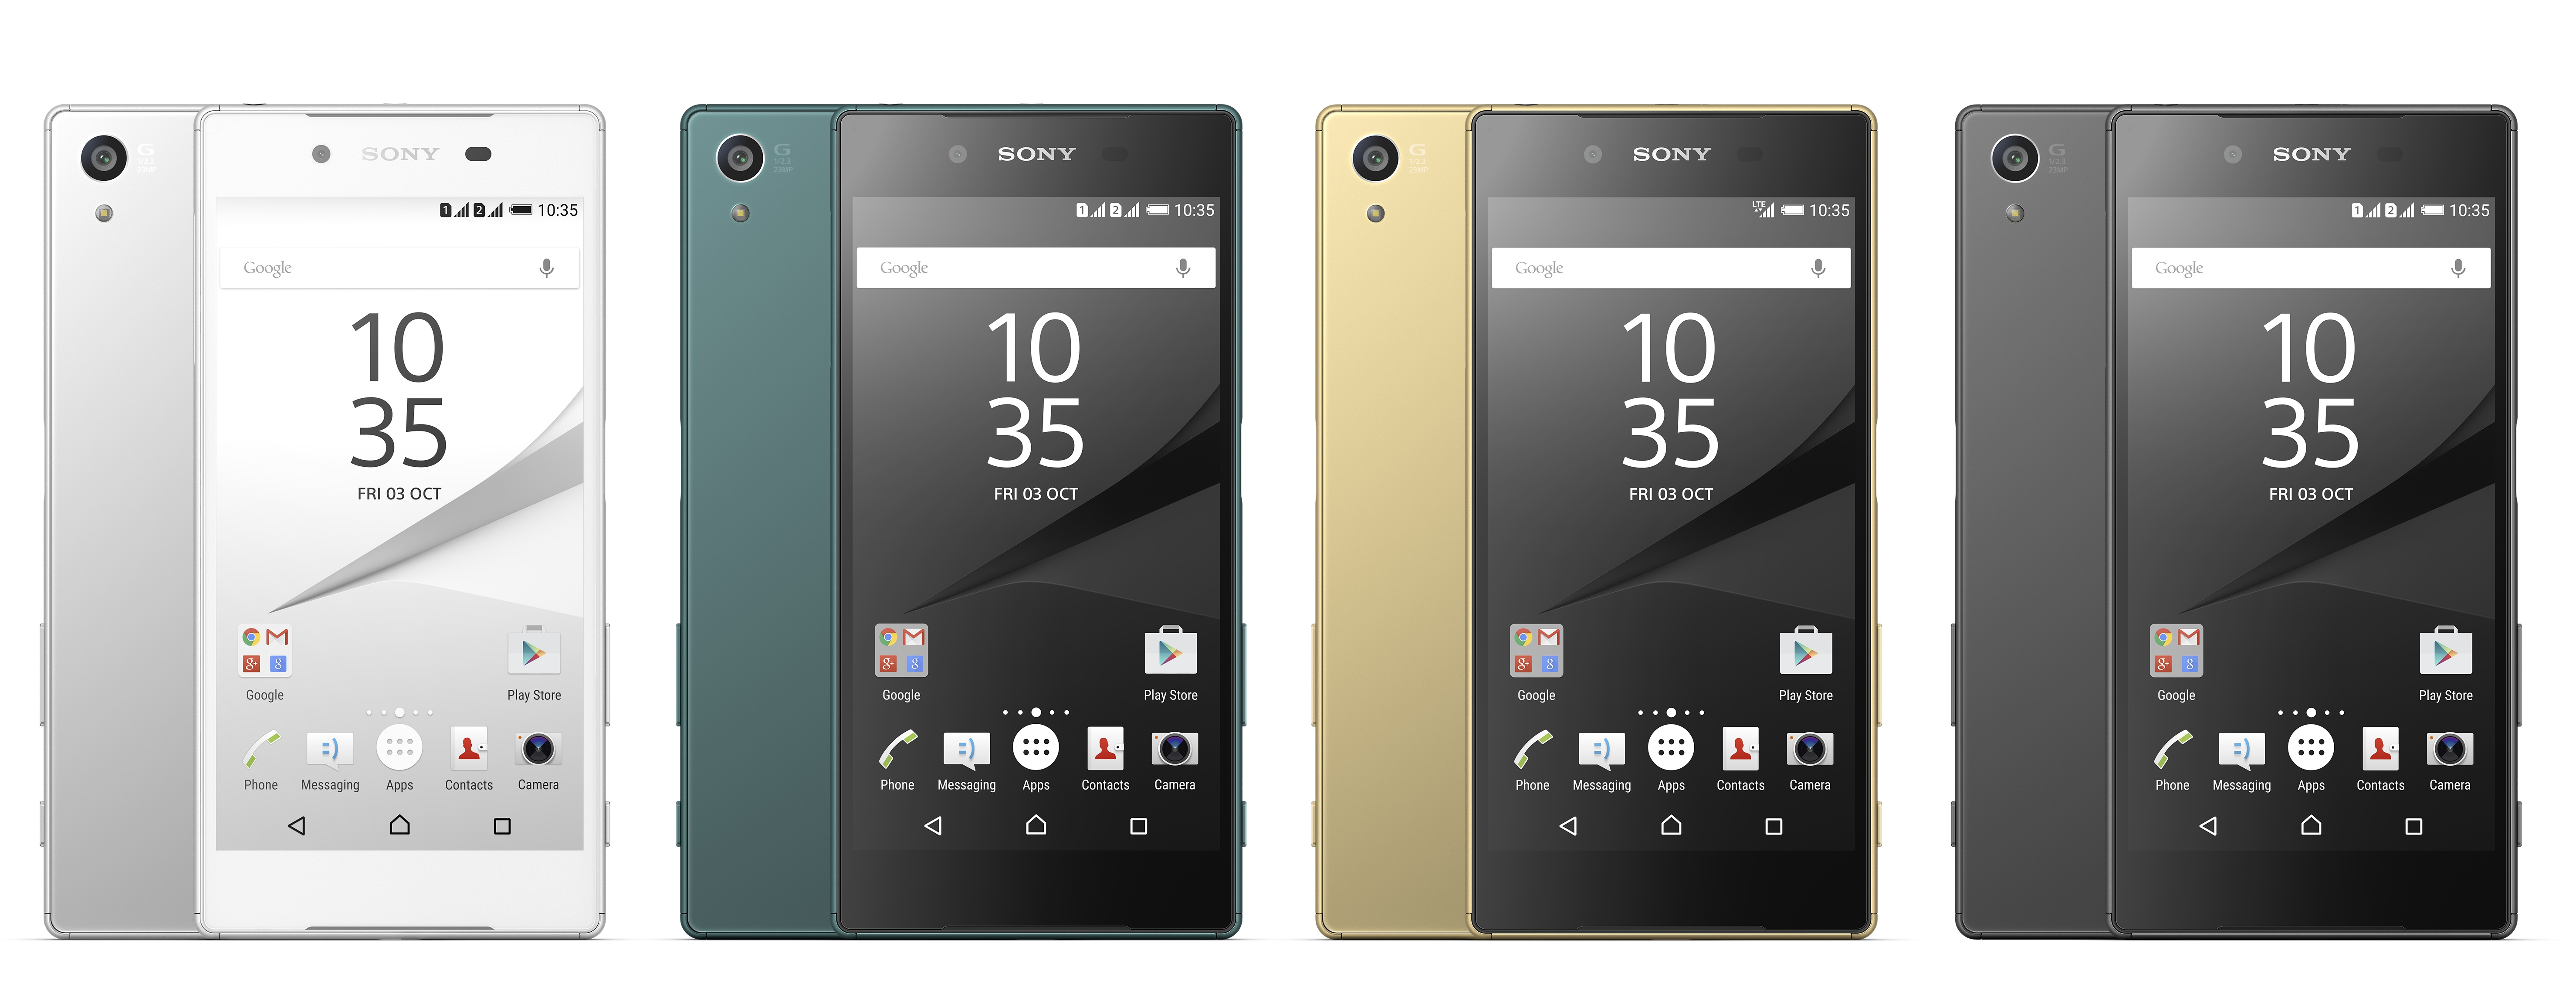 Difference between Sony Xperia Z5 vs iPhone 6S